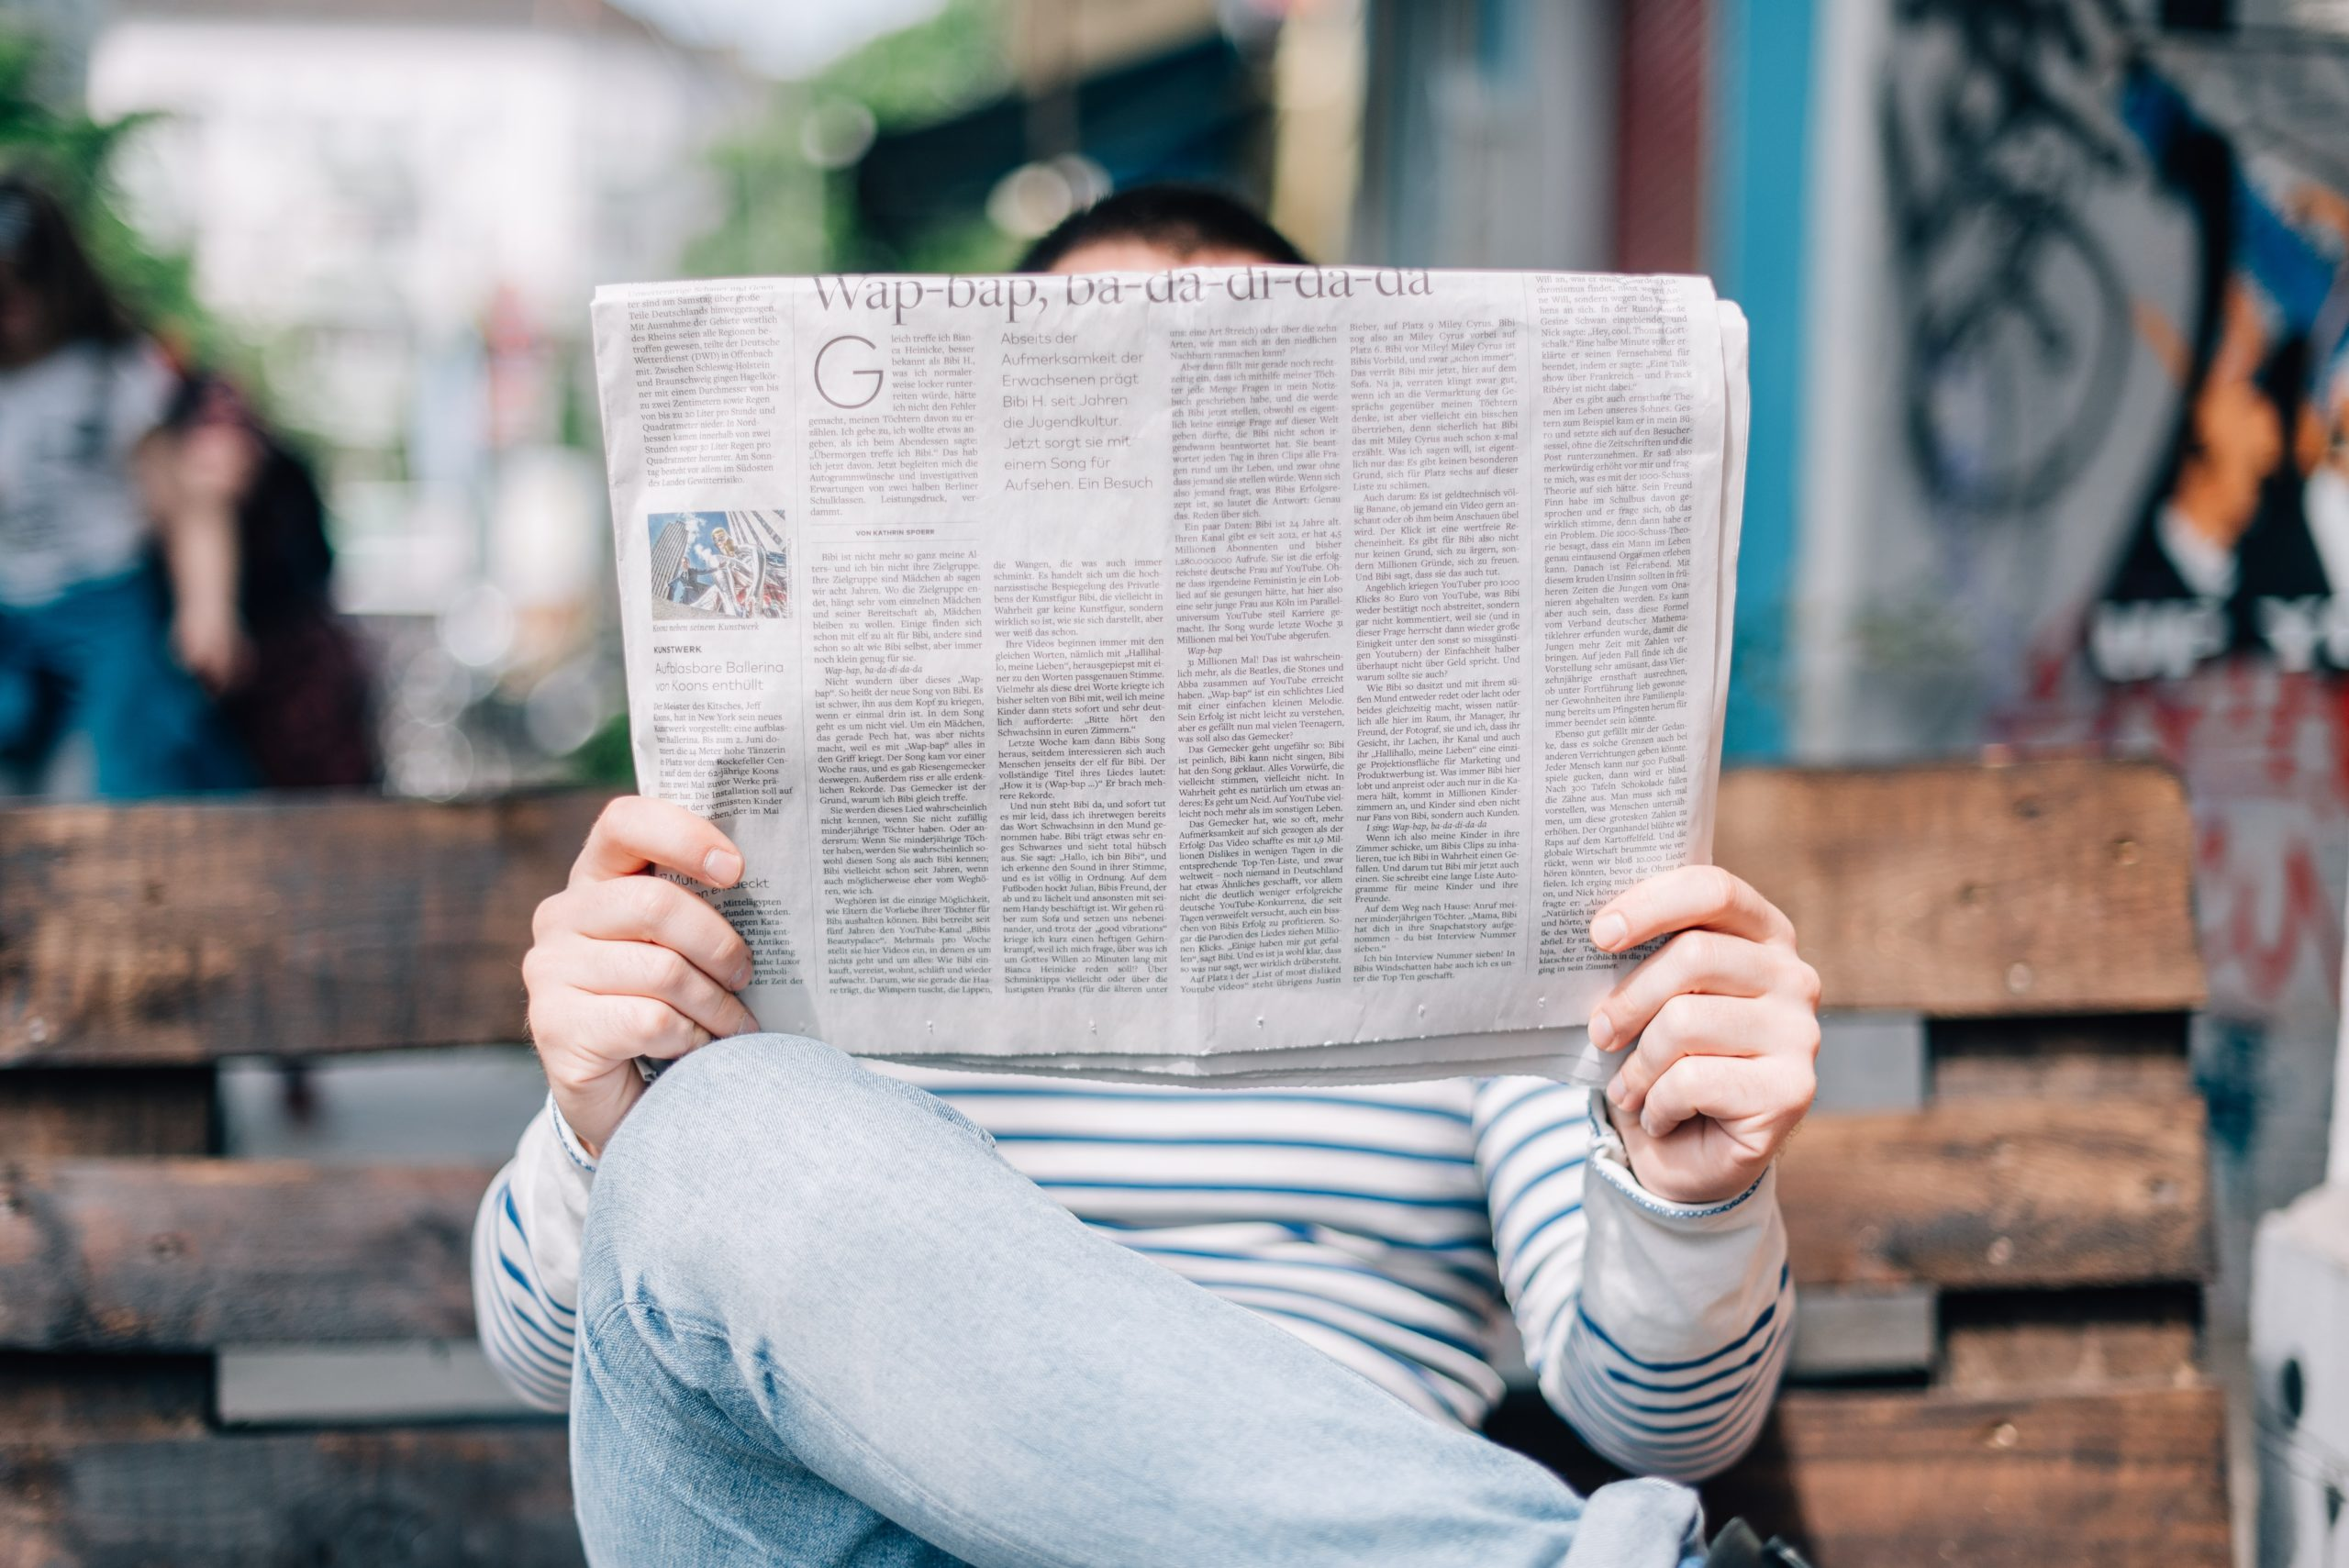 Deciphering Media Stories on Food and Nutrition